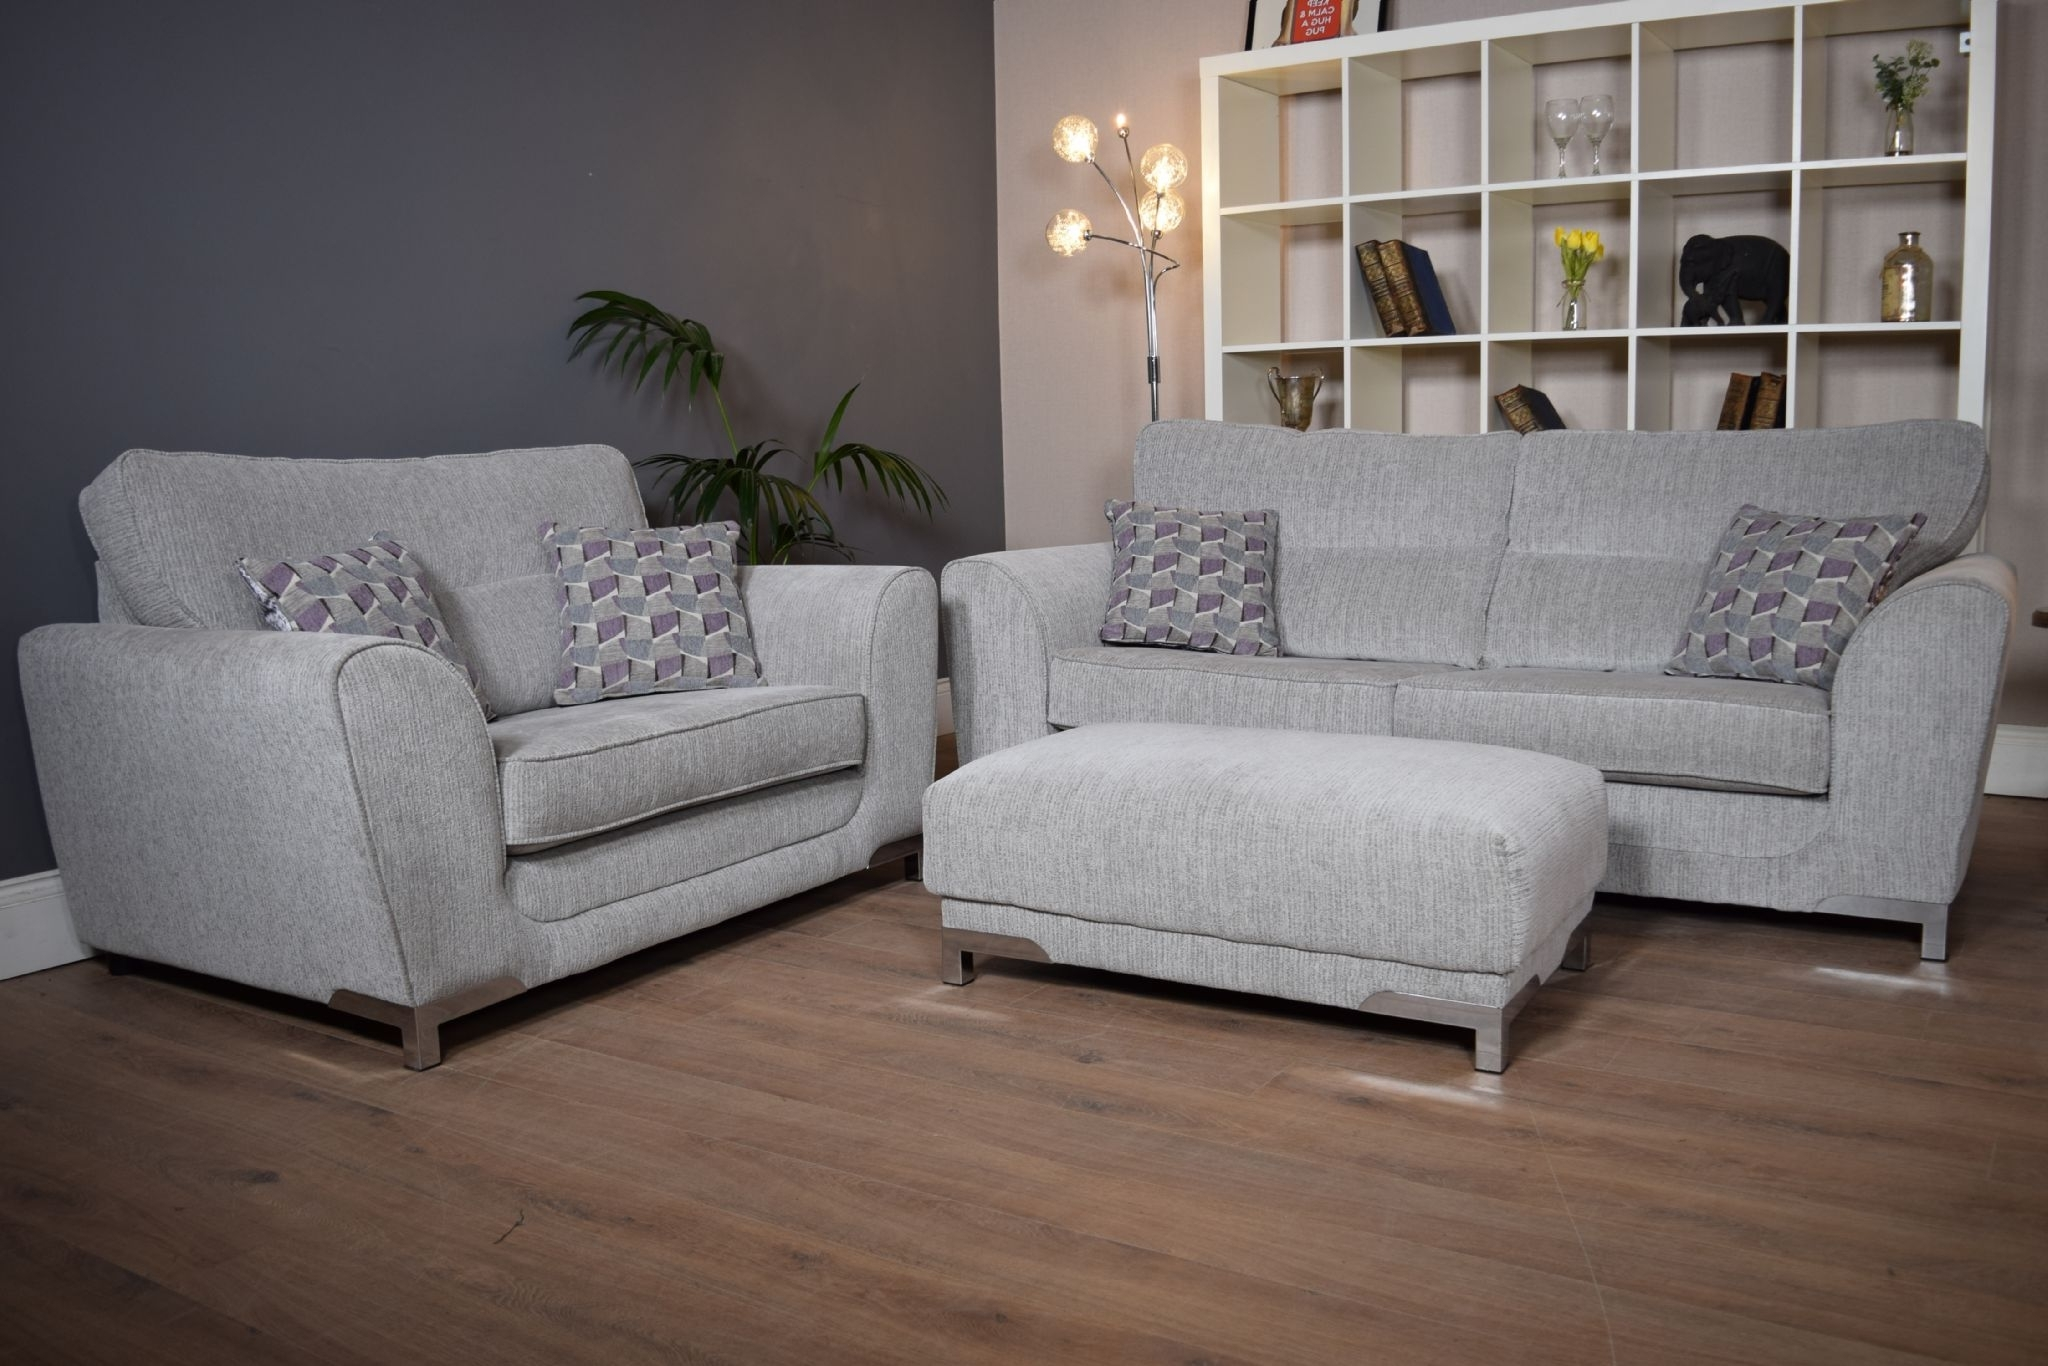 Set Nikki 3 Seater Sofa Cuddle Chair & Footstool Suite Set – Light Intended For 2017 3 Seater Sofas And Cuddle Chairs (View 9 of 15)